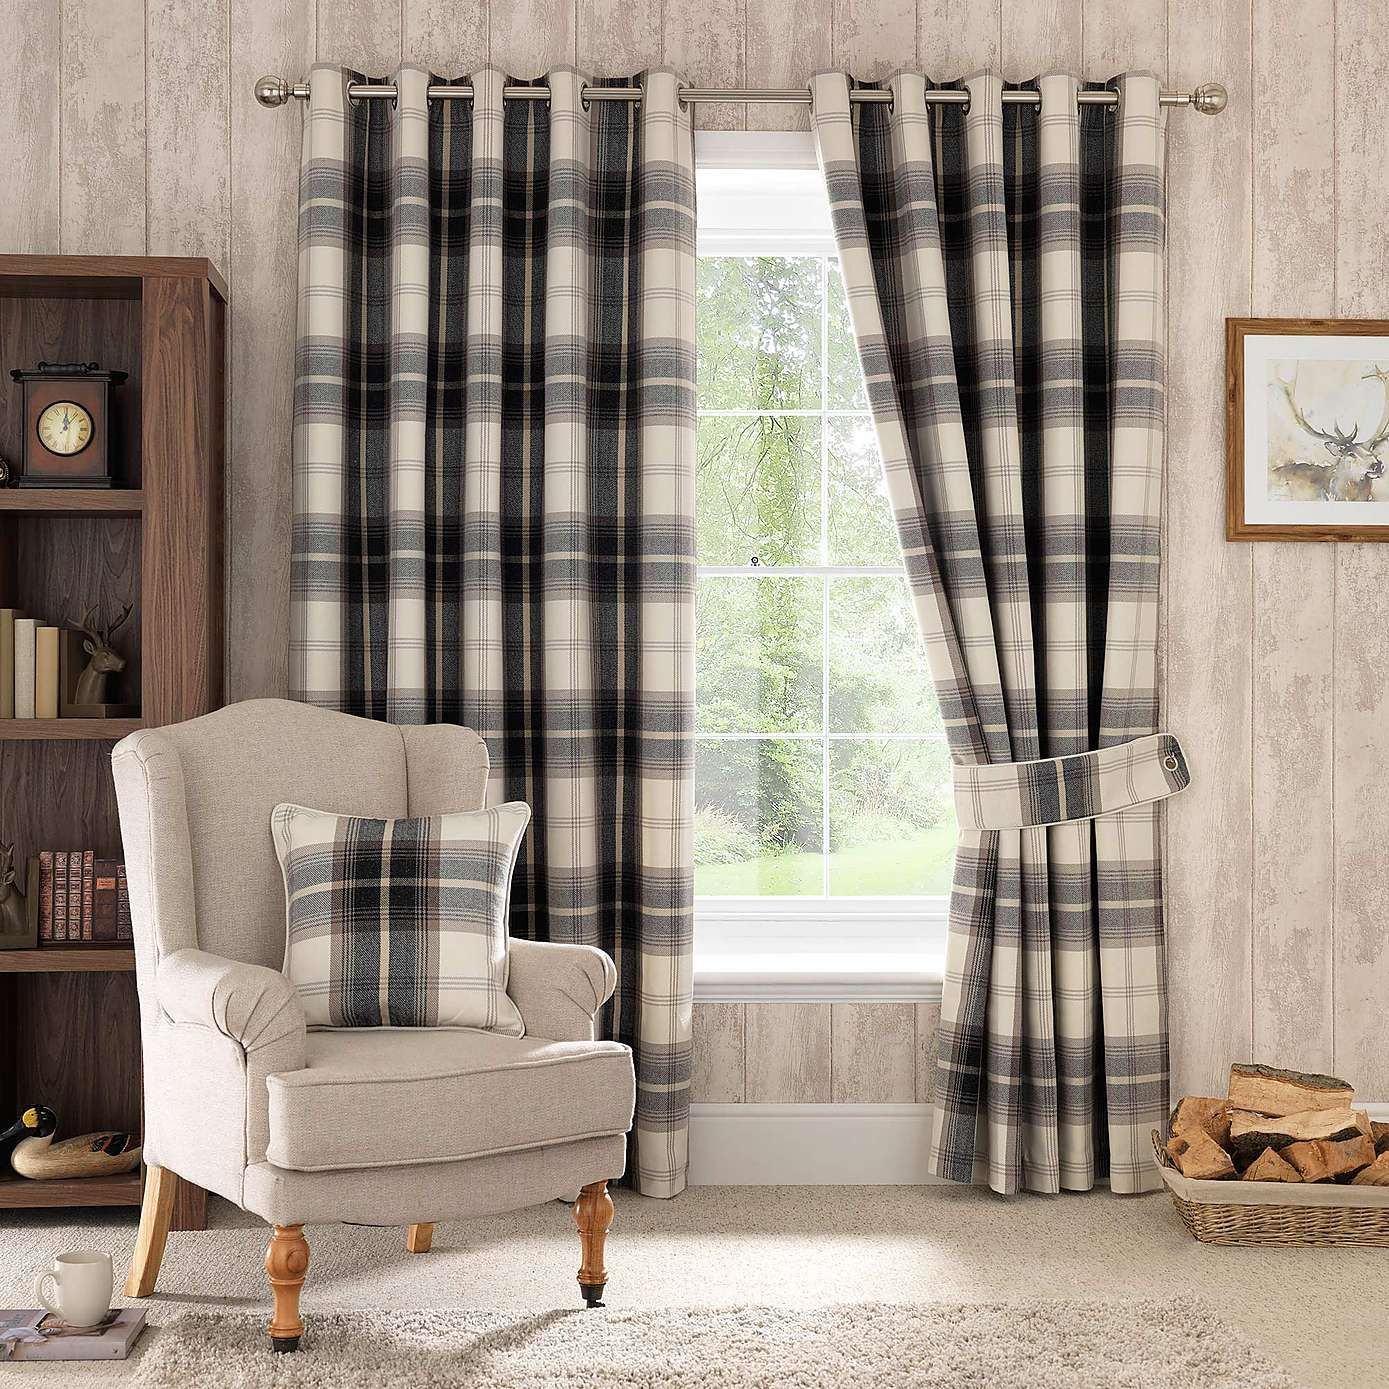 Highland Check Charcoal Eyelet Curtains Curtains Living Room Modern Tartan Curtains Check Curtains